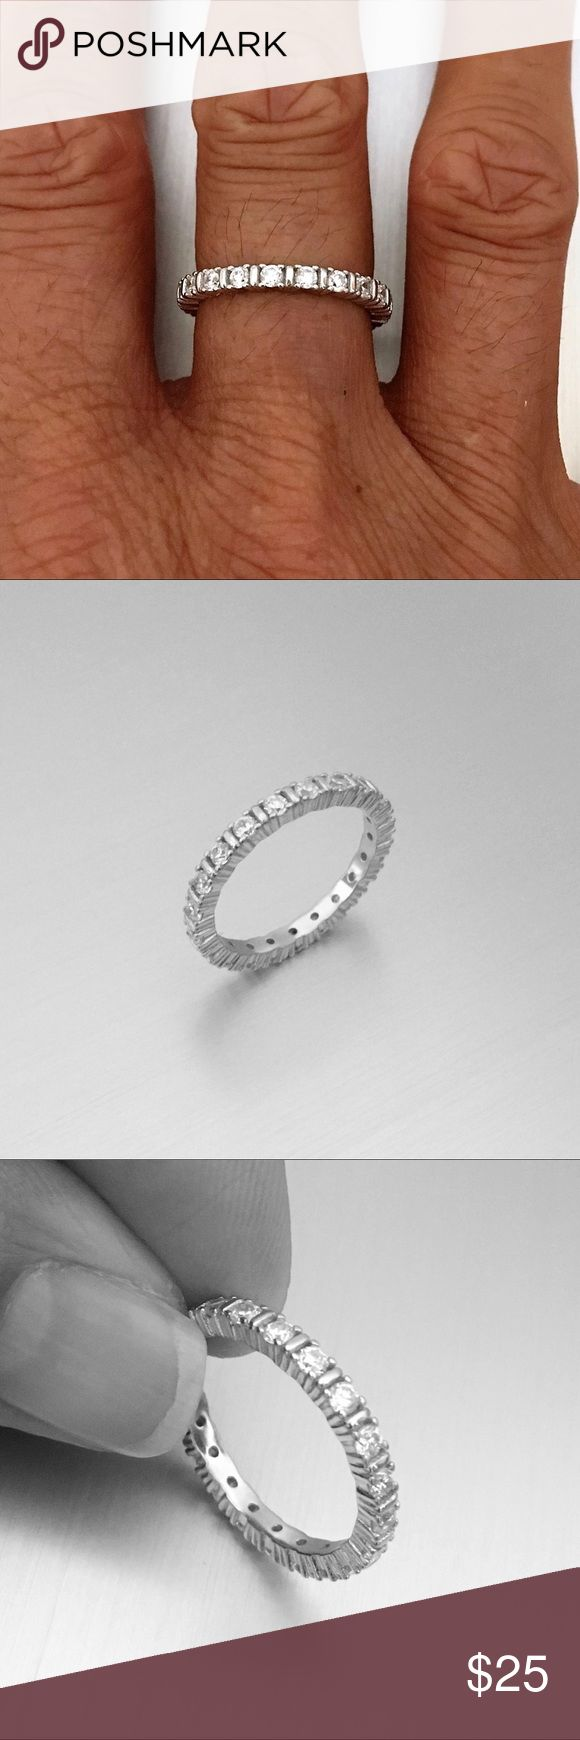 Sterling Silver Eternity CZ Band Sterling Silver Eternity CZ Band  Wedding Band  Stackable Ring  Pinky Ring  Index Ring  Thumb Ring  925 Sterling Silver, Band Width 3 mm, Stone Clear CZ Jewelry Rings